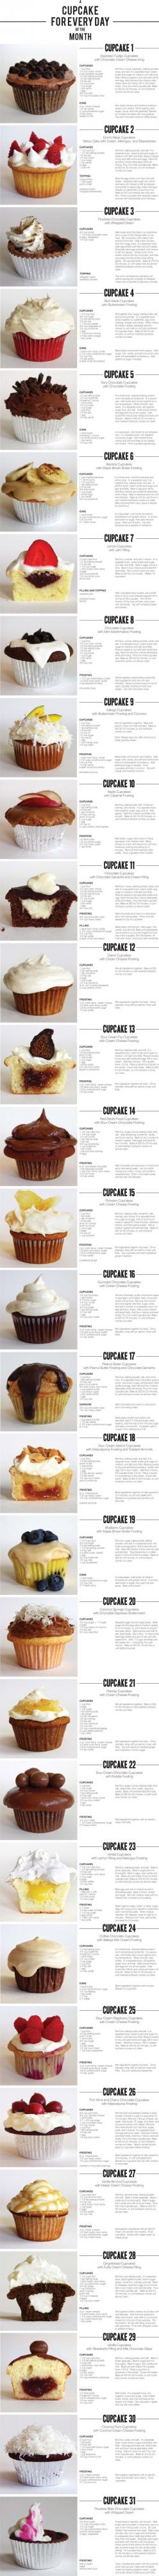 A Cupcake For Every Day of the Month!: Cupcakes Cake, Cuppycake, Cupcake Recipes, Cup Cake, 31 Cupcakes, Sweet Tooth, Dessert